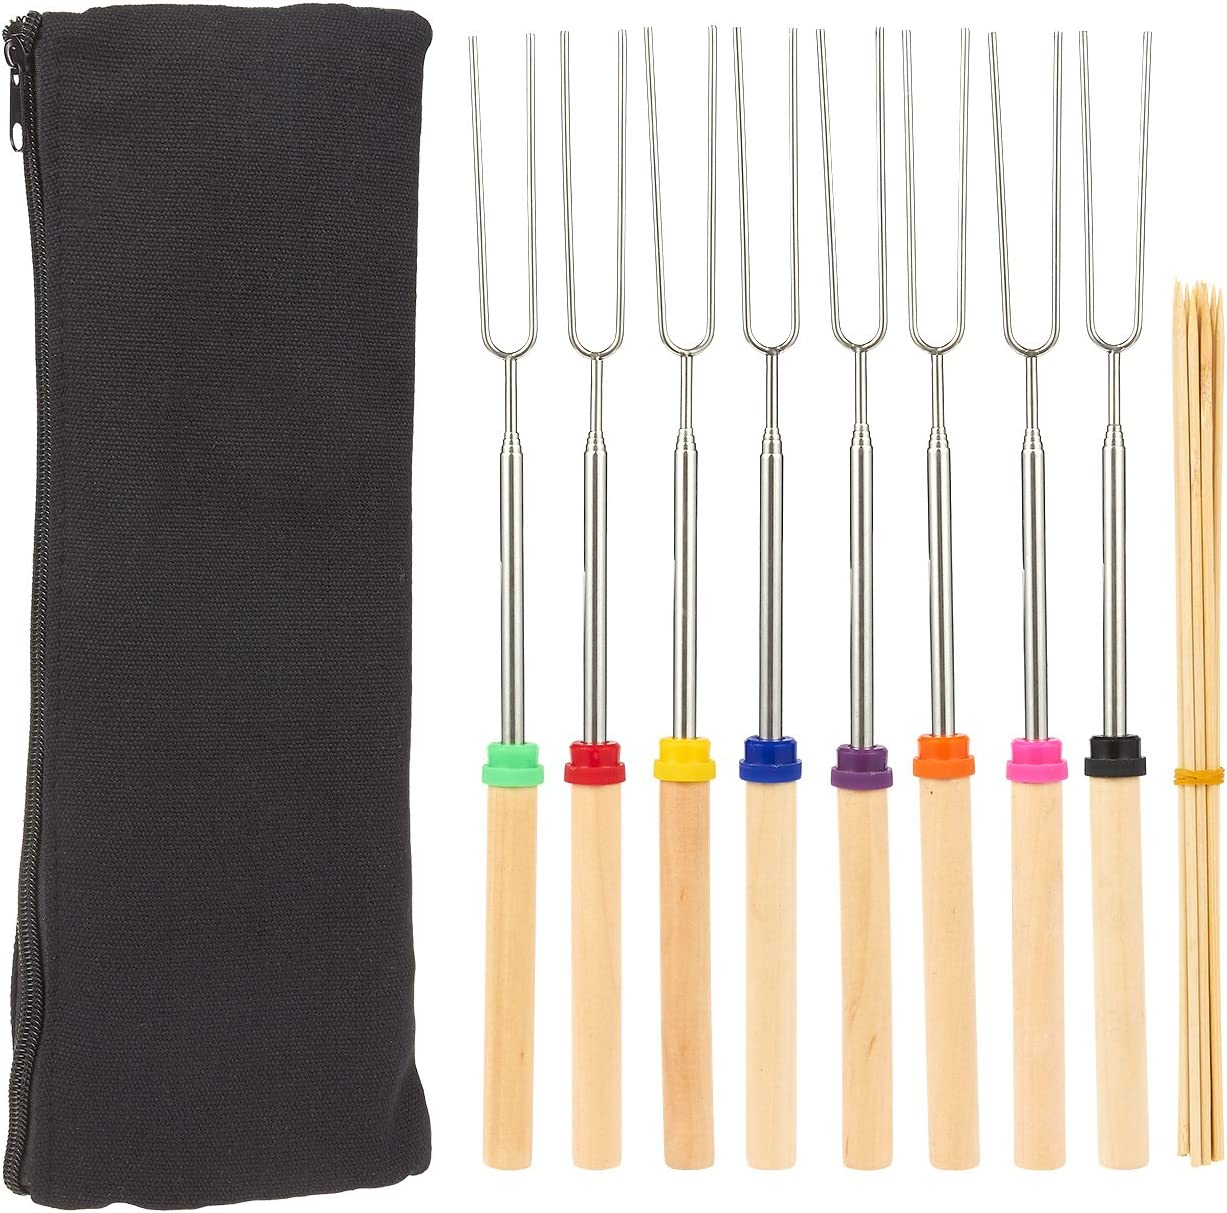 Roasting Forks for Smores Juvale Set of 8 Marshmallow Roasting Sticks 32-Inch Telescoping Stainless Steel Roasting Sticks Includes Carrying Bag and 10 Bamboo Skewers Hot Dogs